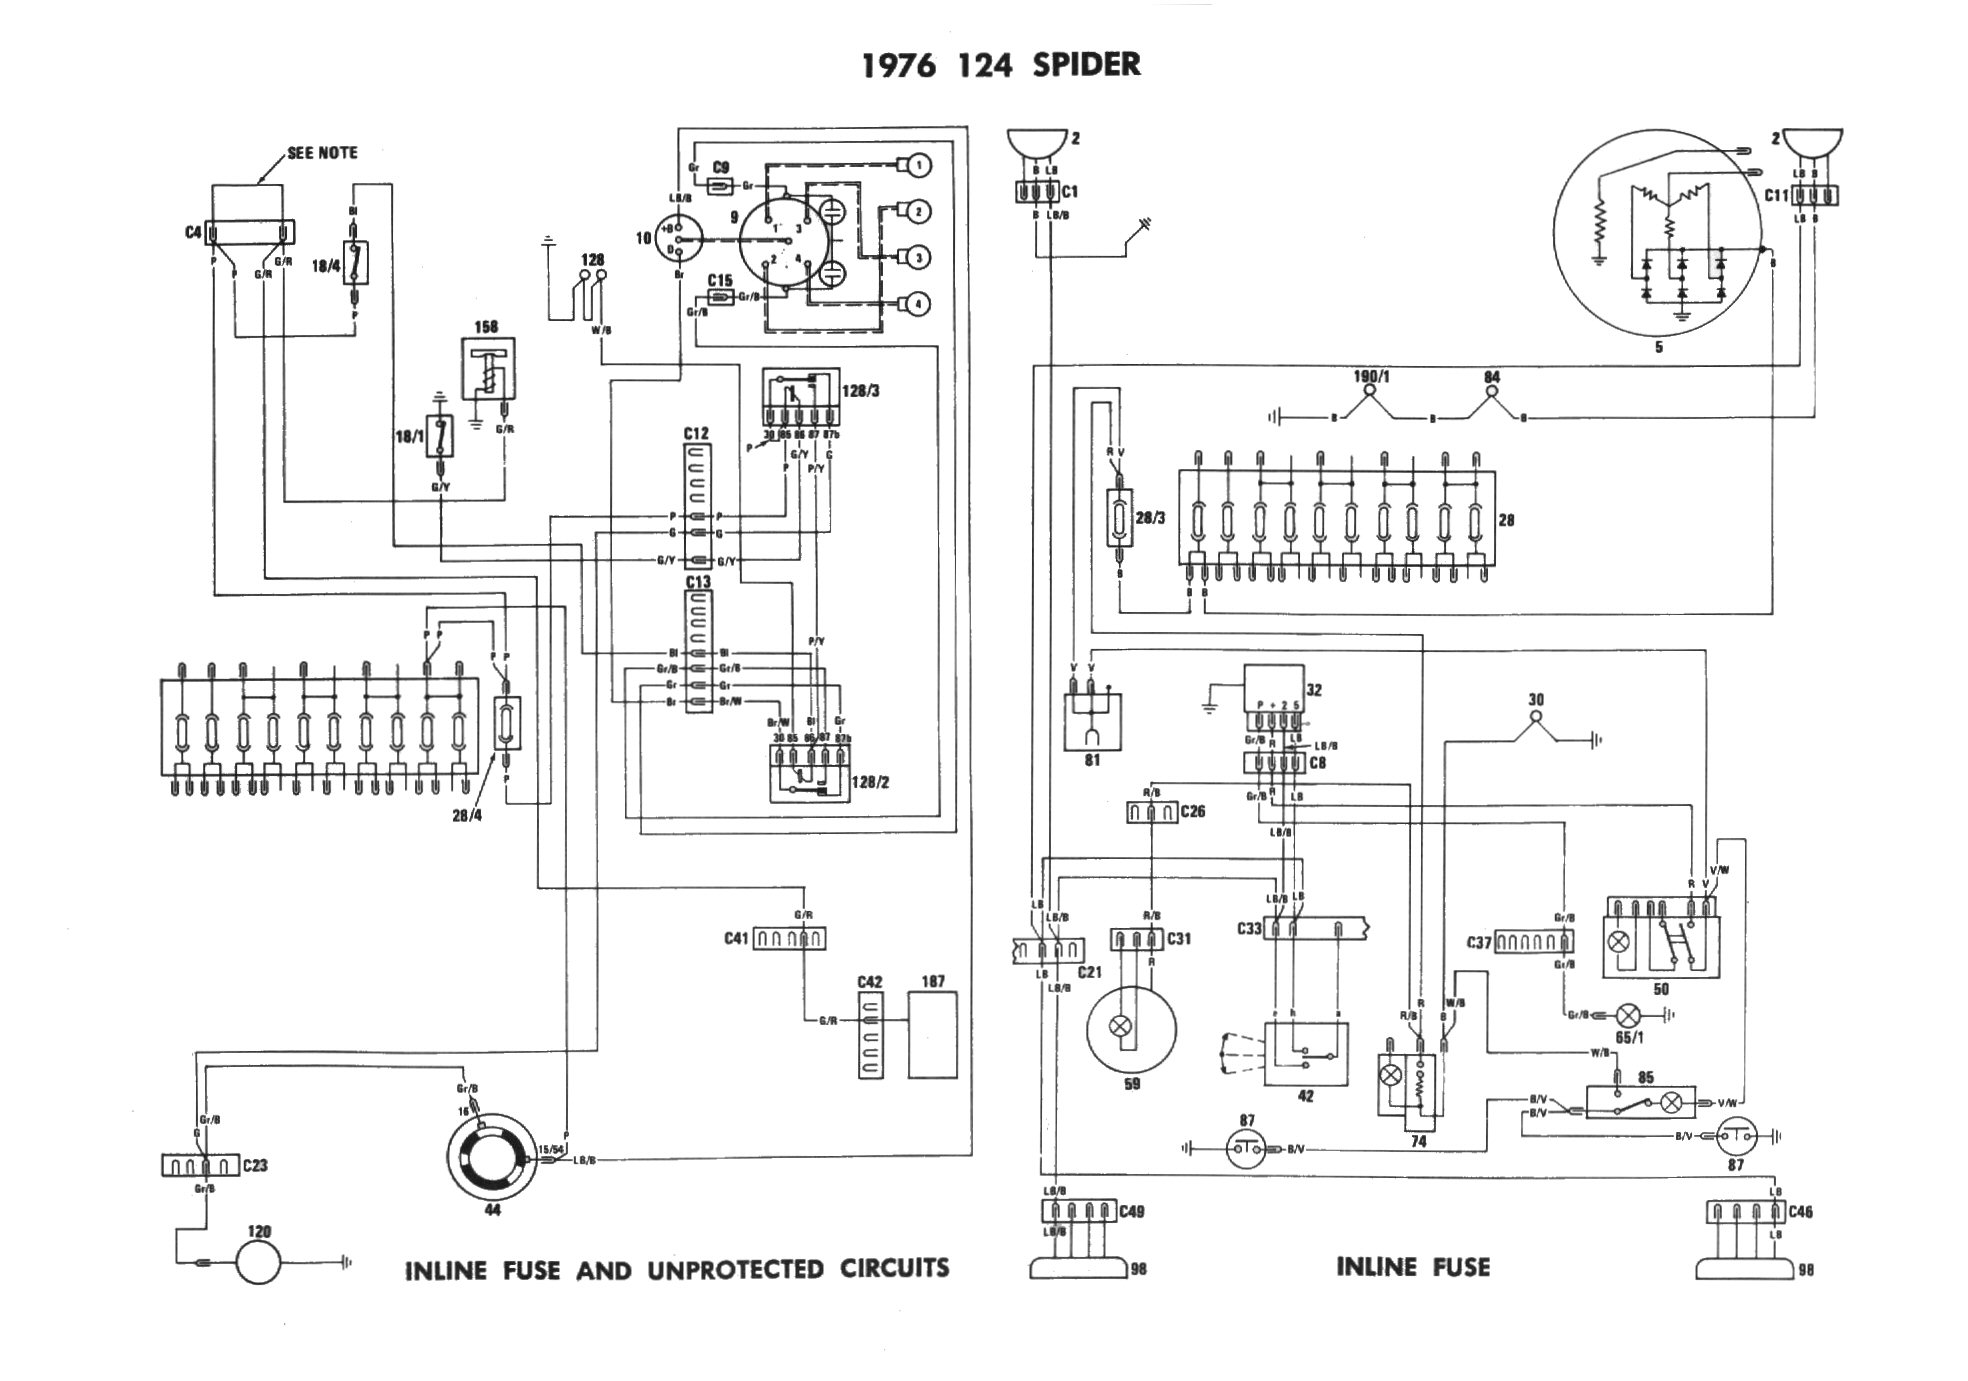 fuse box diagram likewise tractor starter solenoid wiring diagram